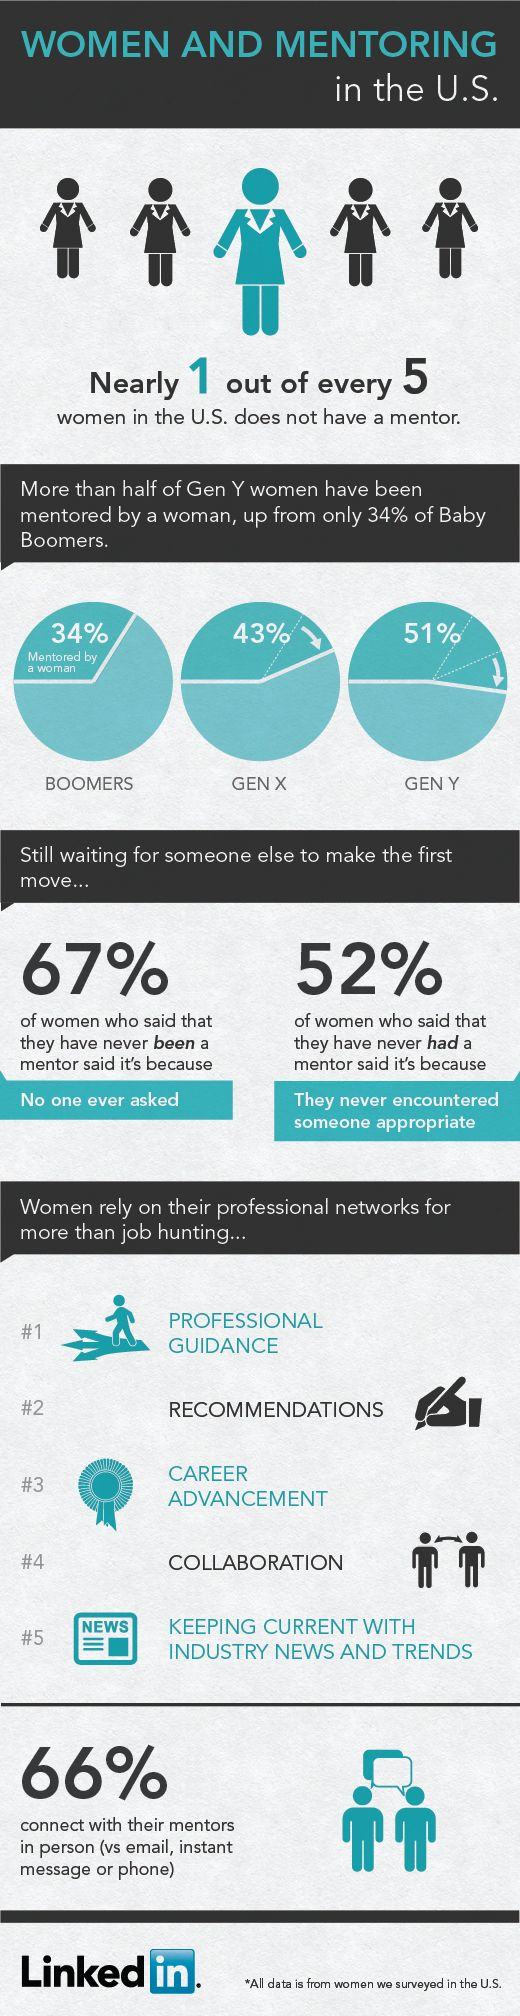 women and mentoring